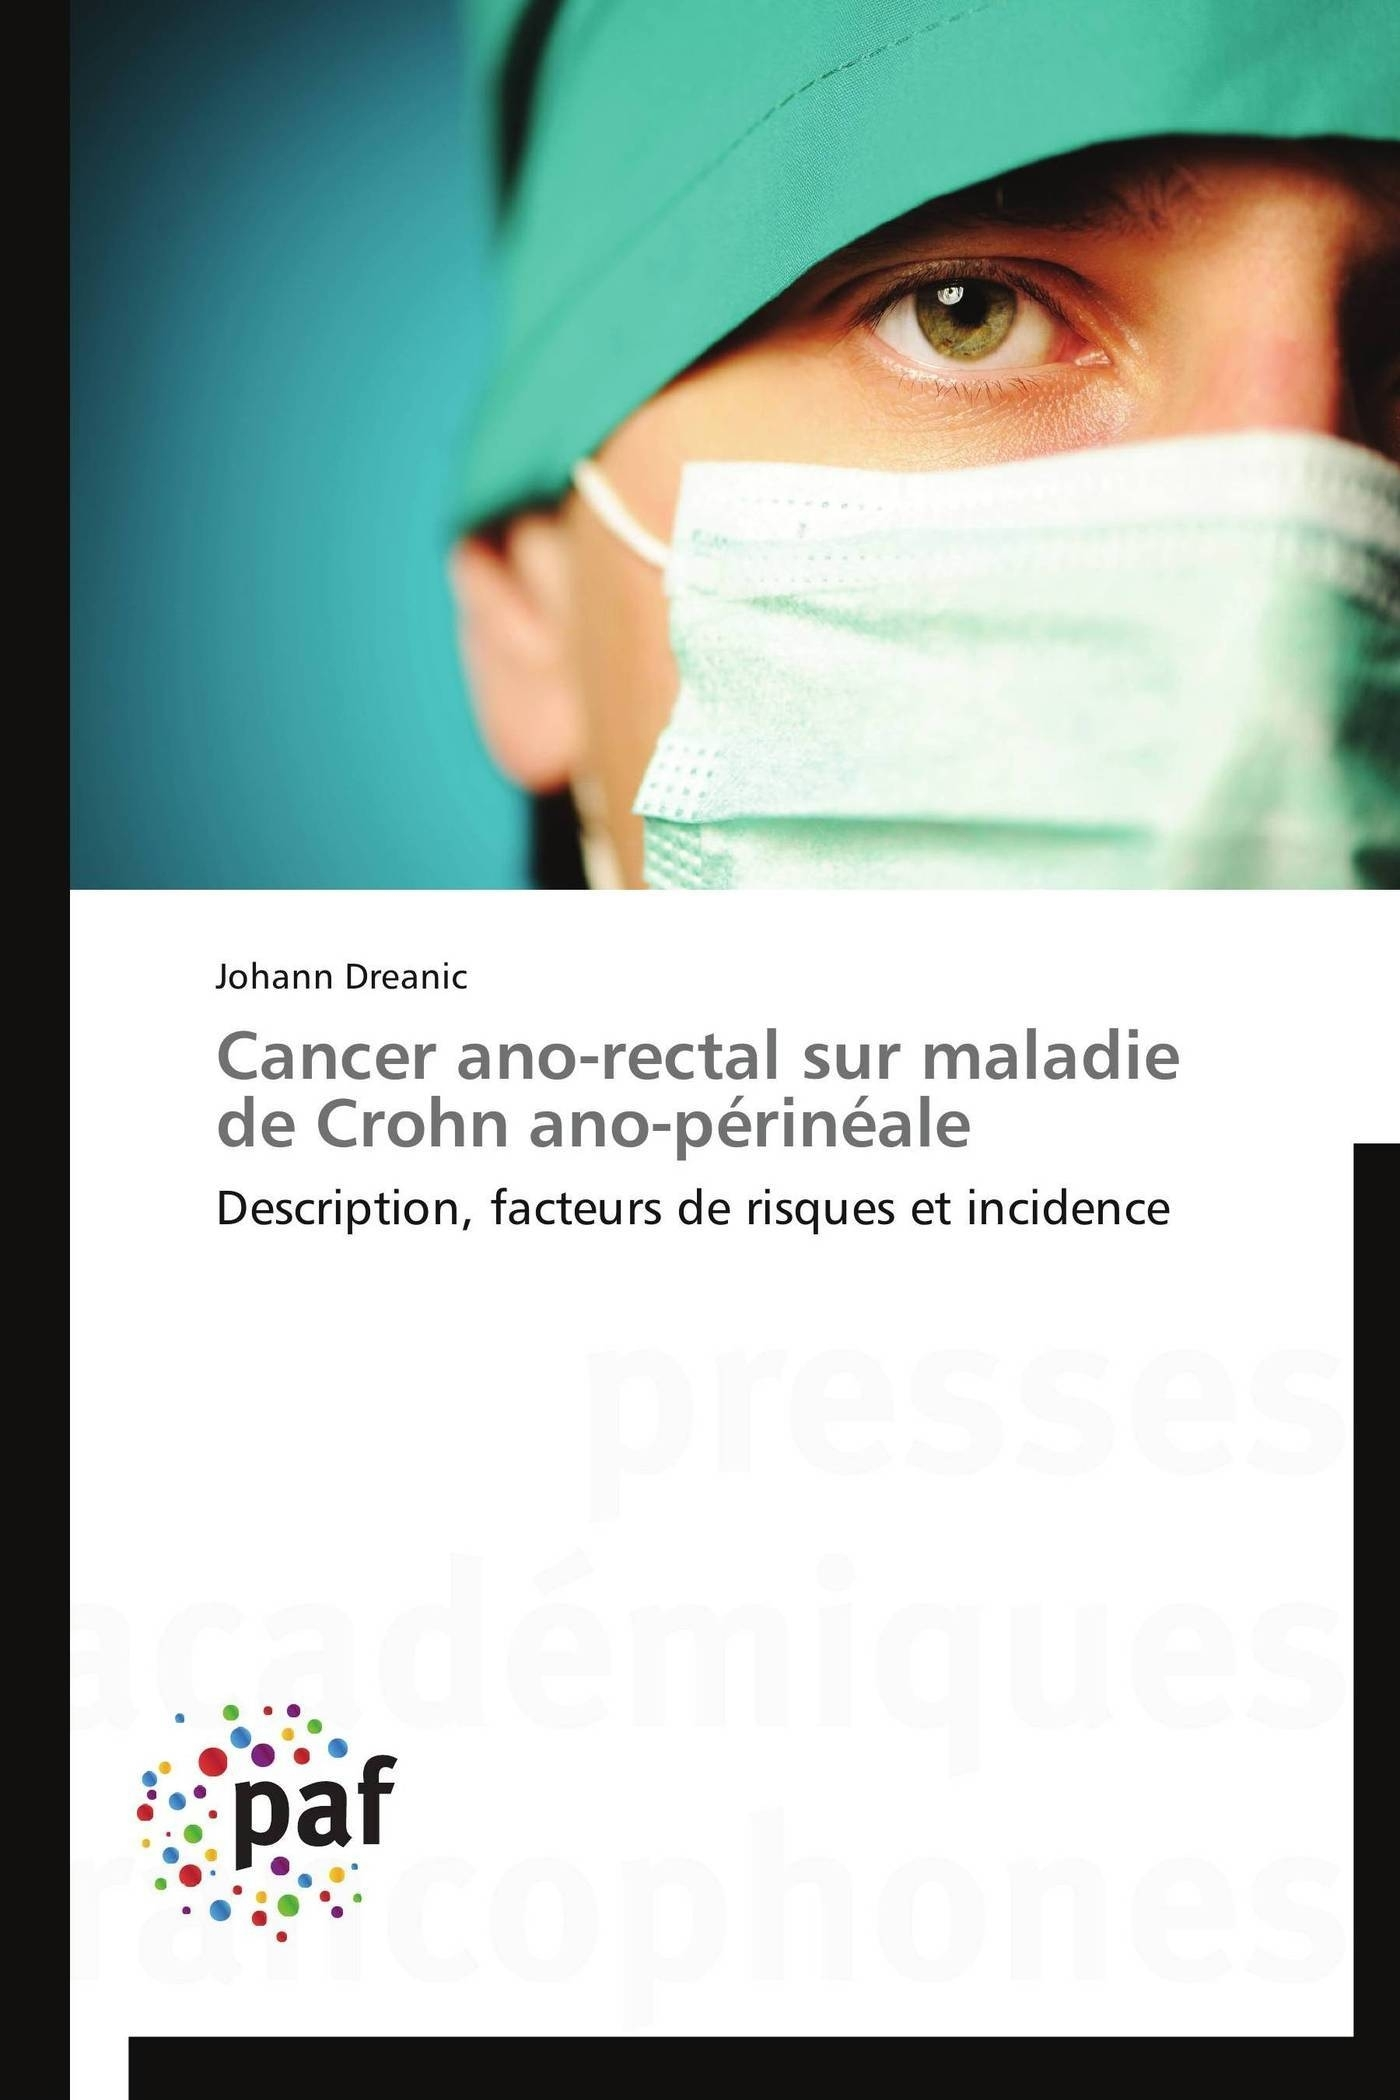 CANCER ANO-RECTAL SUR MALADIE DE CROHN ANO-PERINEALE